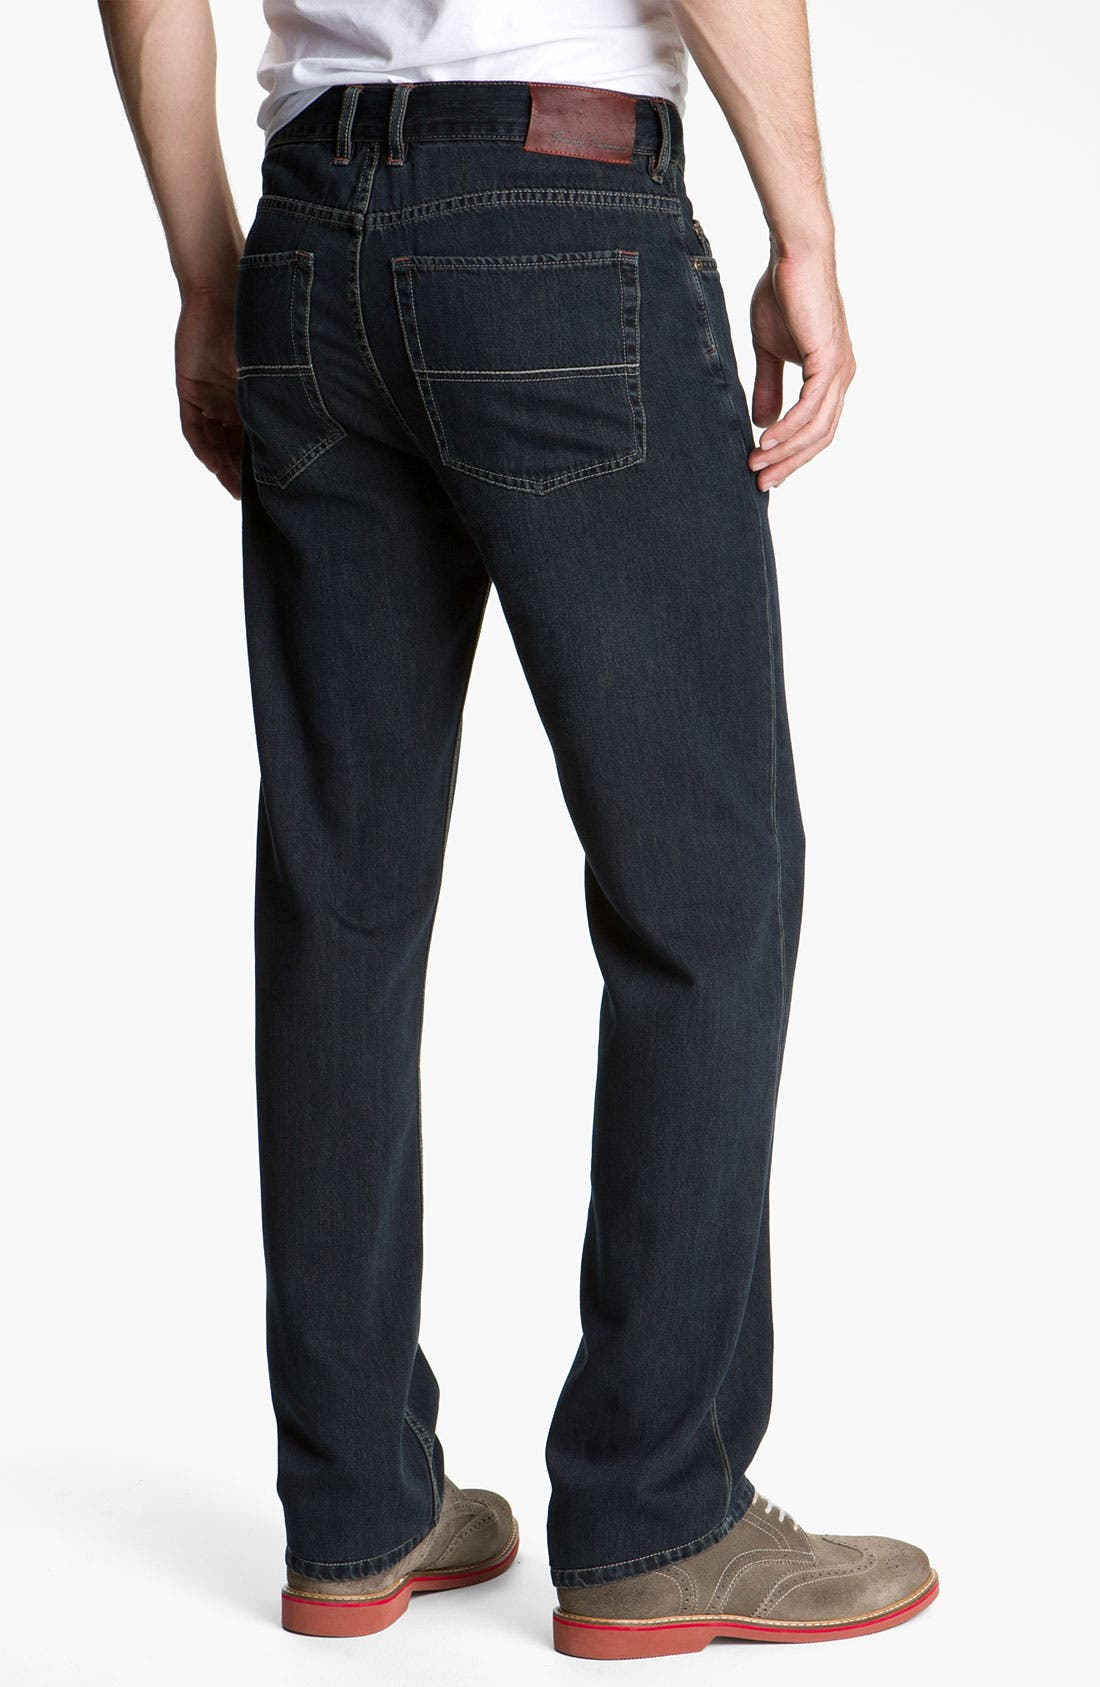 Main Image - Tommy Bahama Denim 'Standard Island Ease' Straight Leg Jeans (Blue Black Overdye)